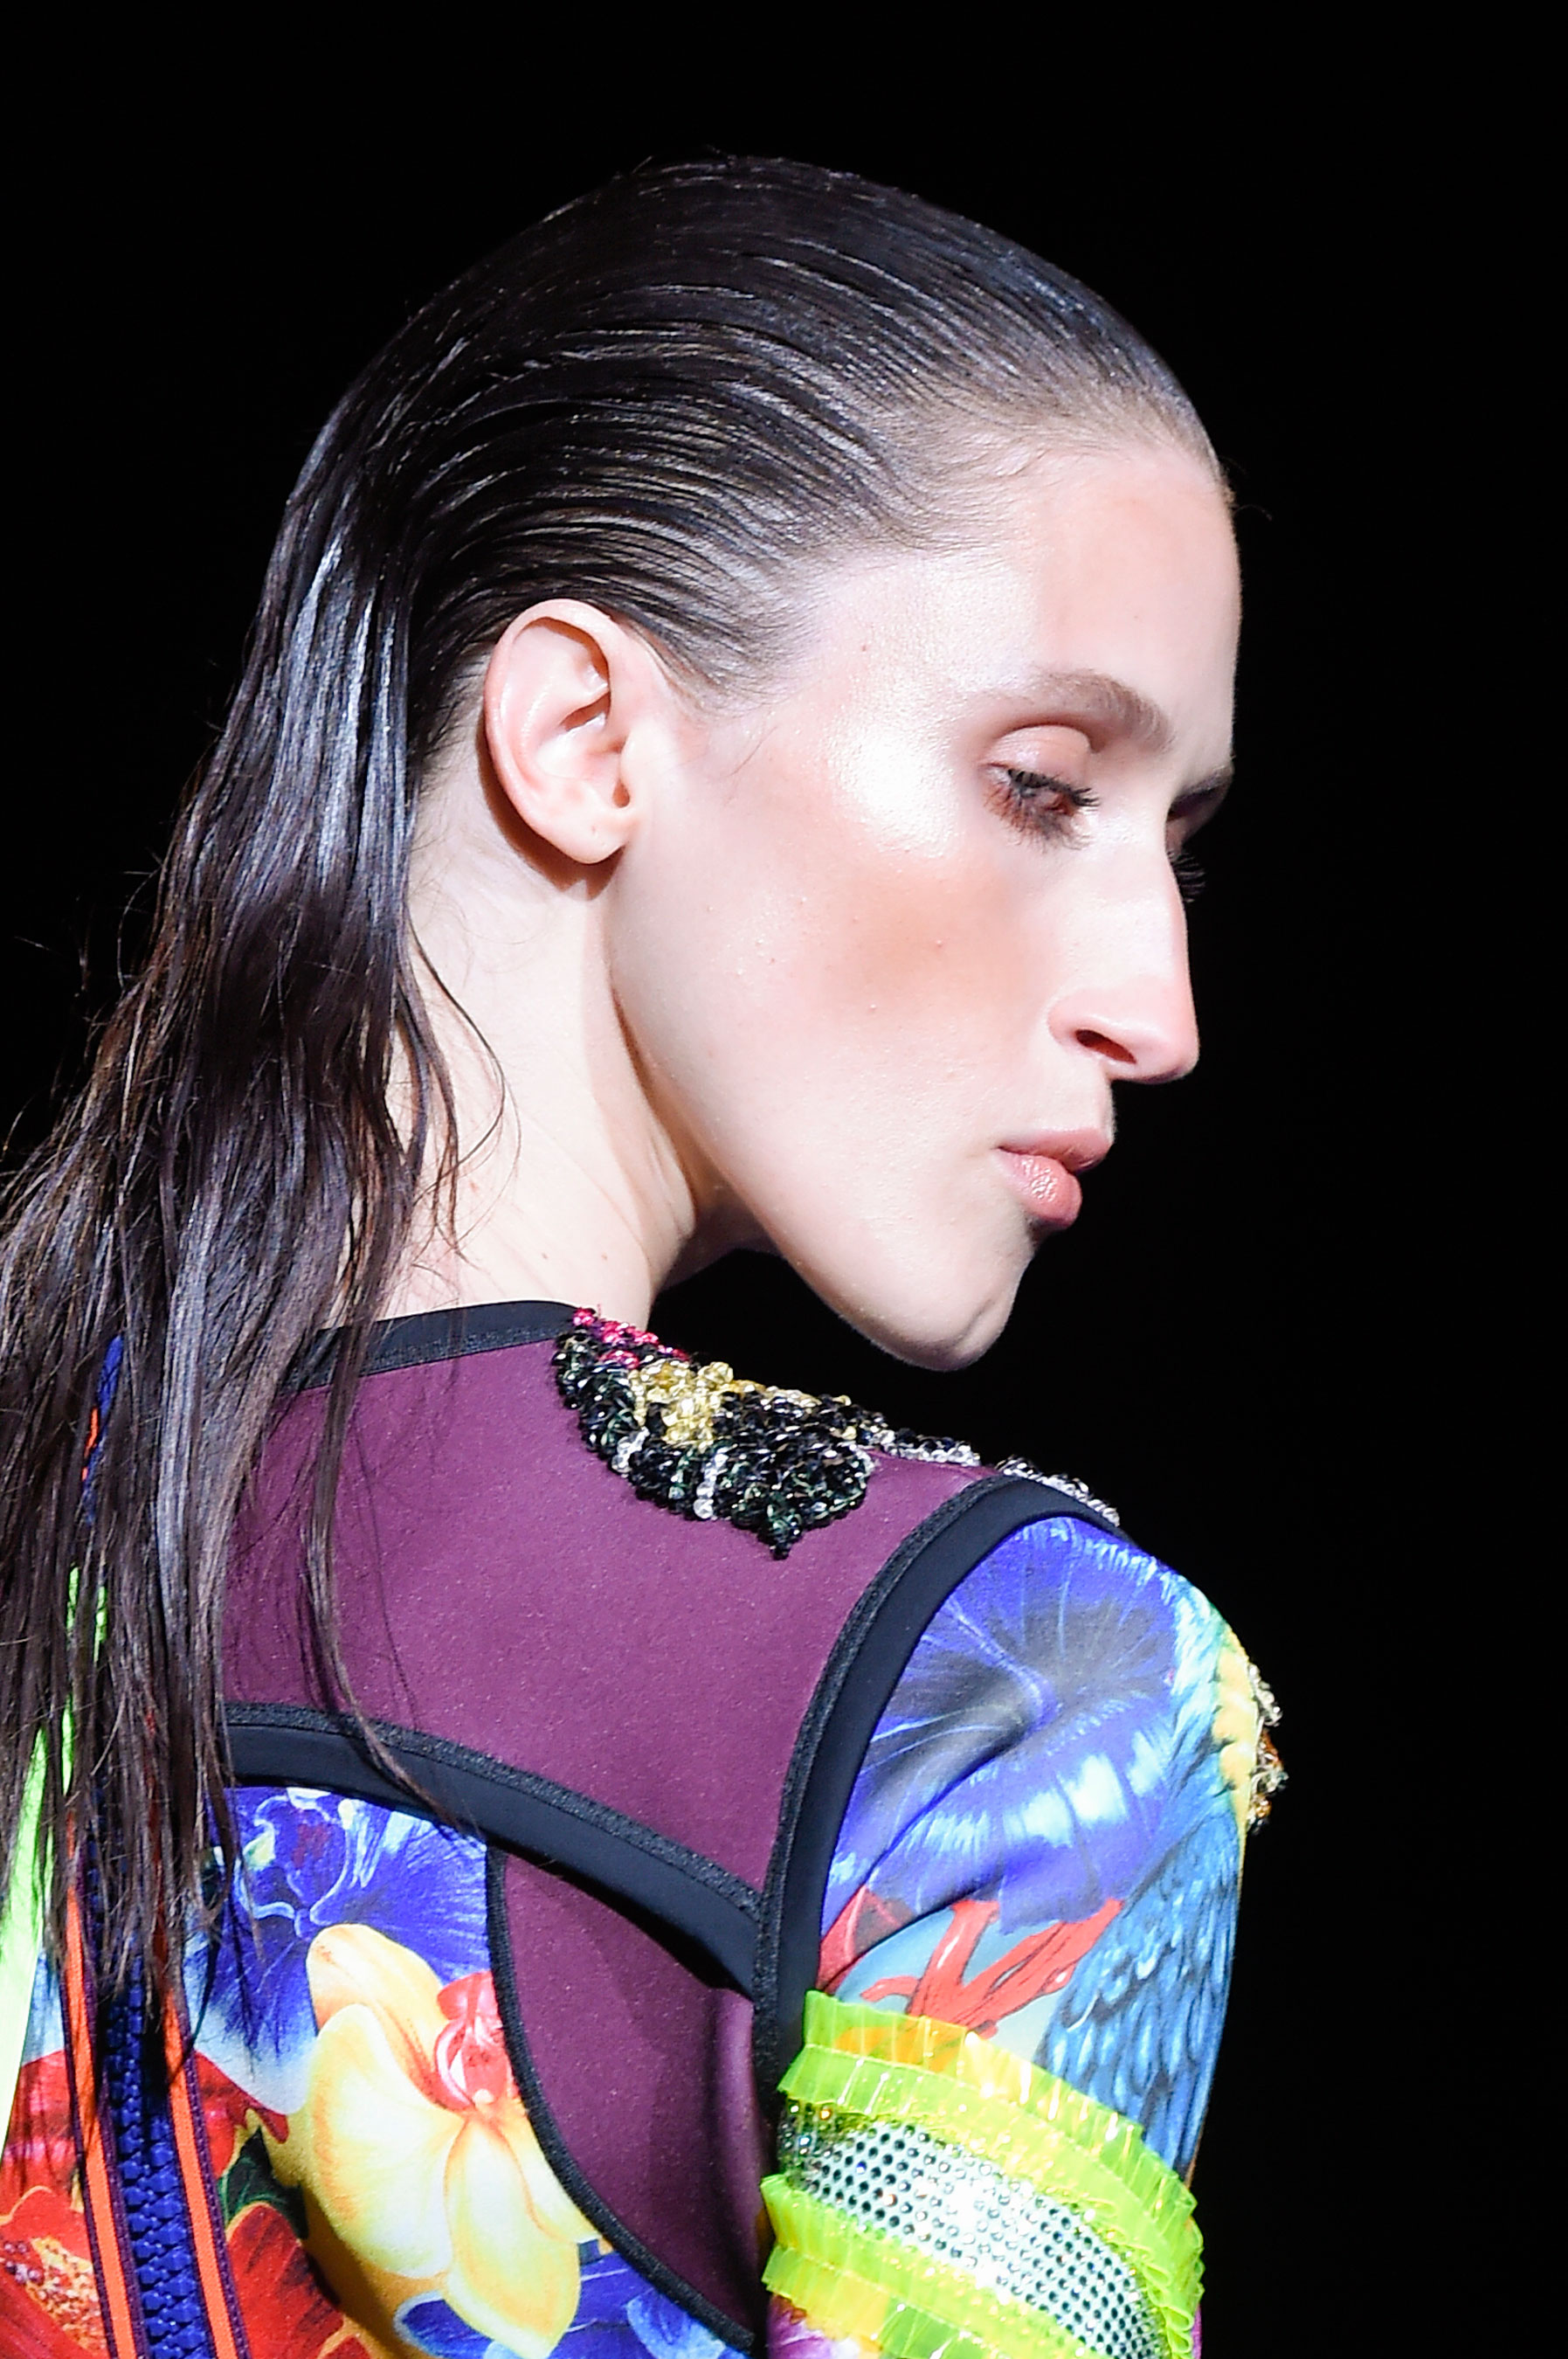 DSquared2-runway-beauty-spring-2016-fashion-show-the-impression-035